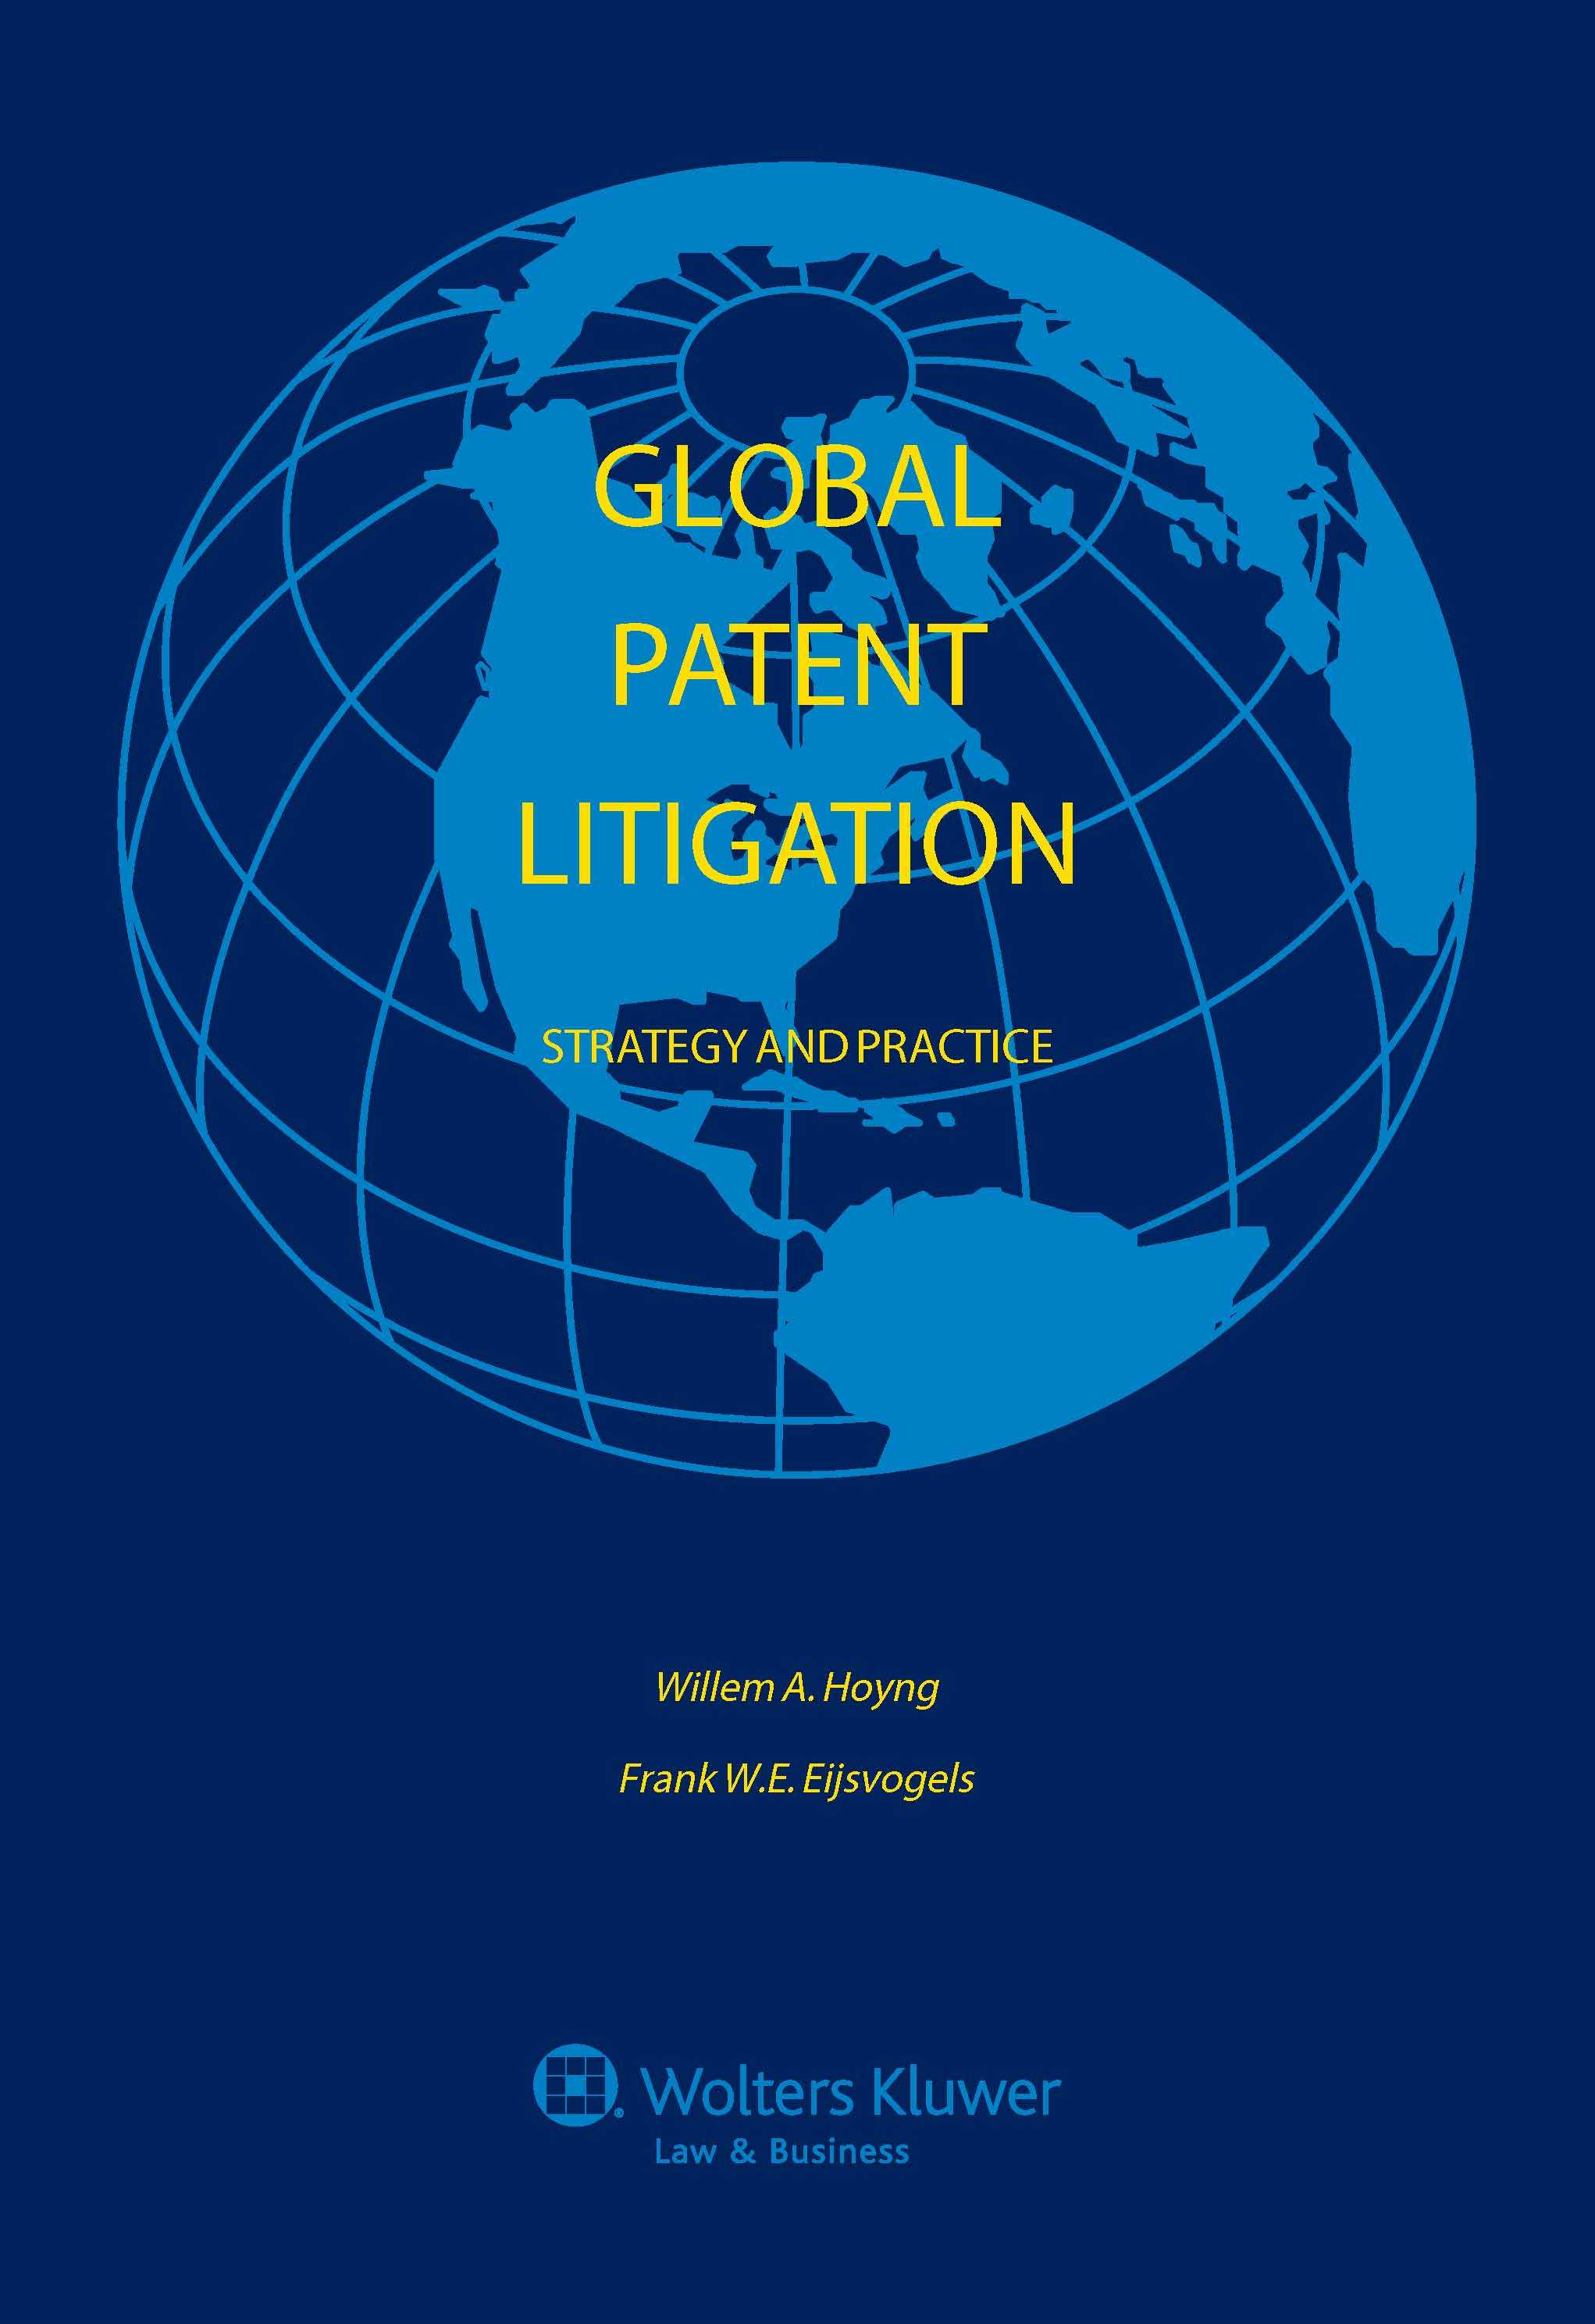 Global Patent Litigation: Strategy and Practice by HOYNG